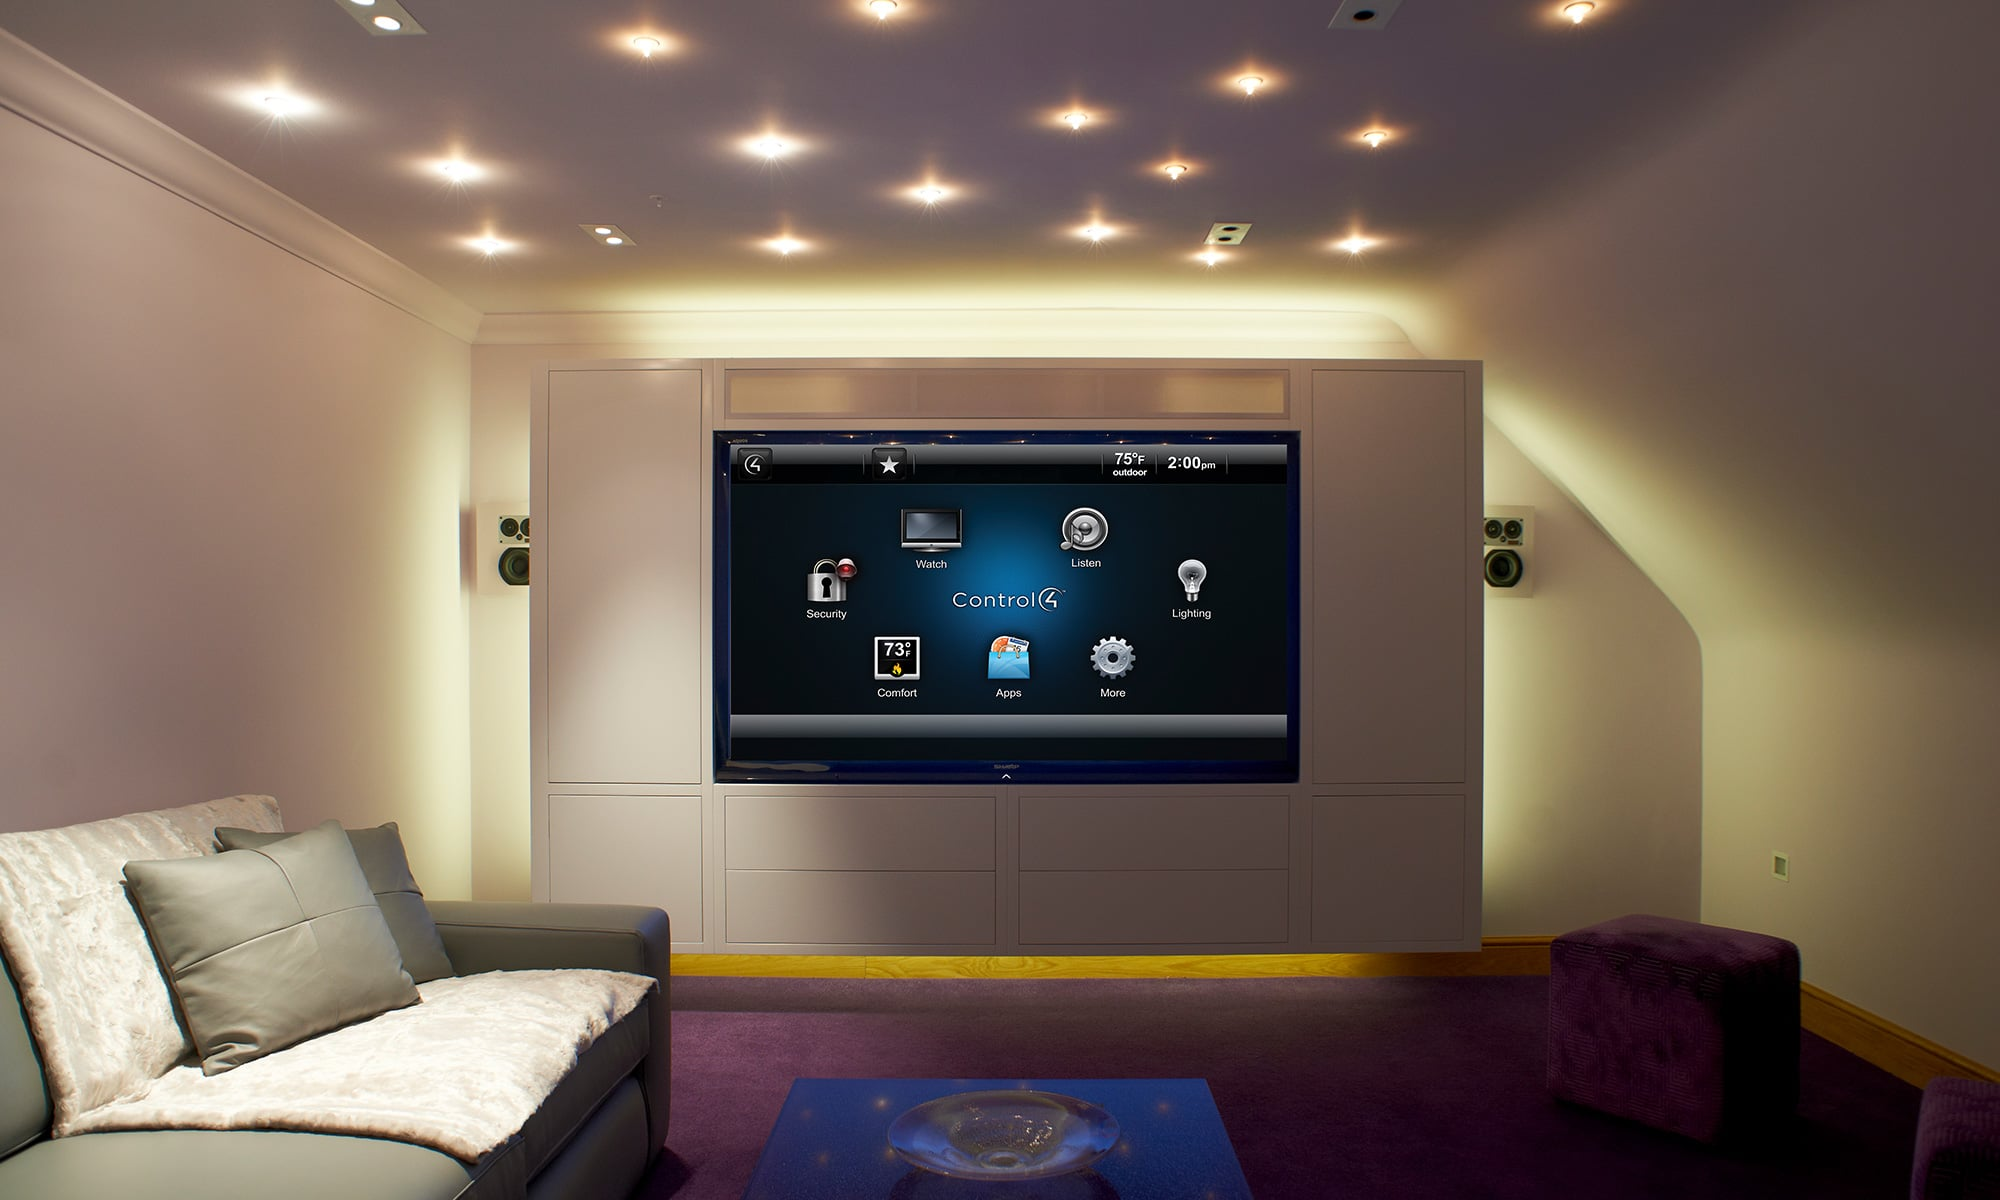 authorised-dealers Home automation systems: A guide to the smart home market in 2018